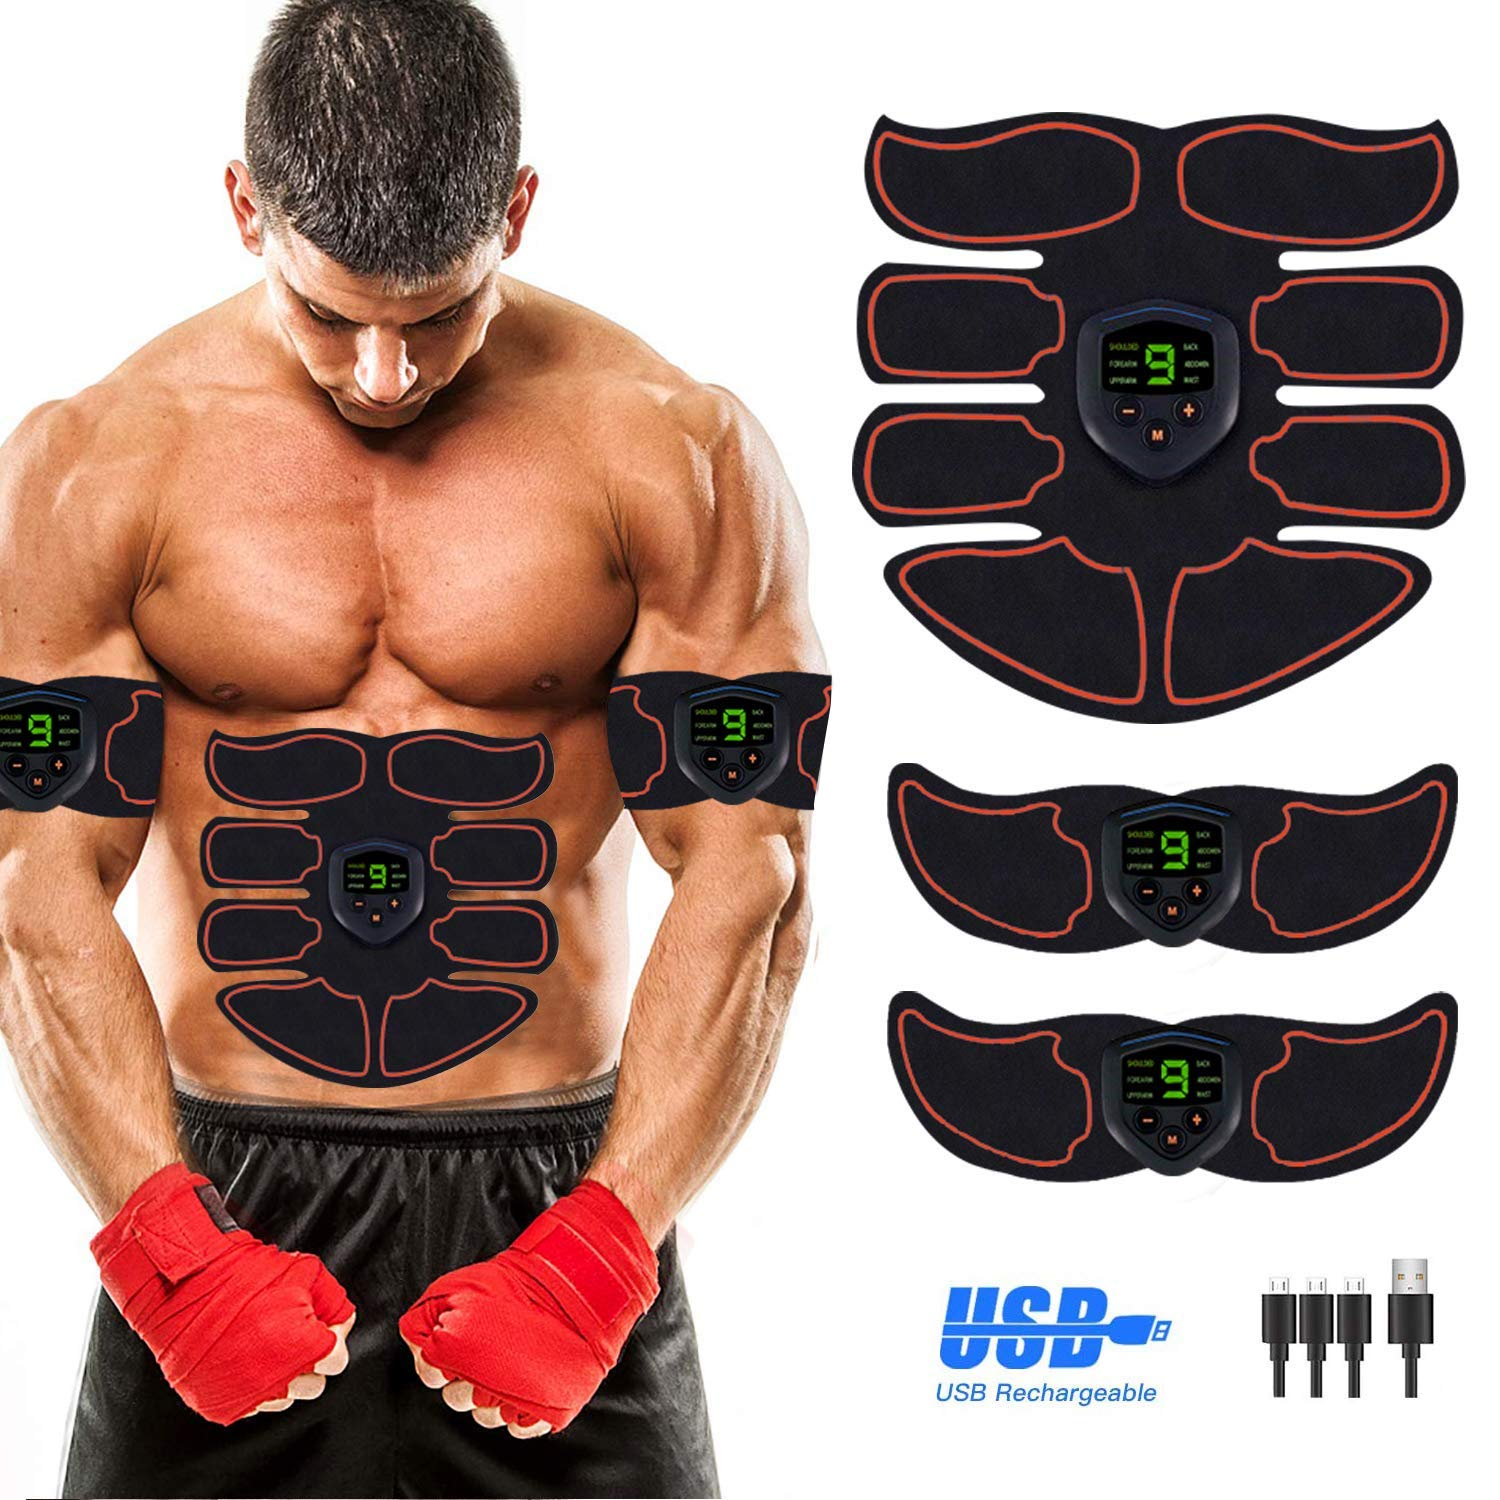 Abs Stimulator Abdominal Muscle, EMS ABS Trainer Body Toning Fitness, USB Rechargeable Toning Belt ABS Fit Weight Muscle Toner Workout Machine for Men Women